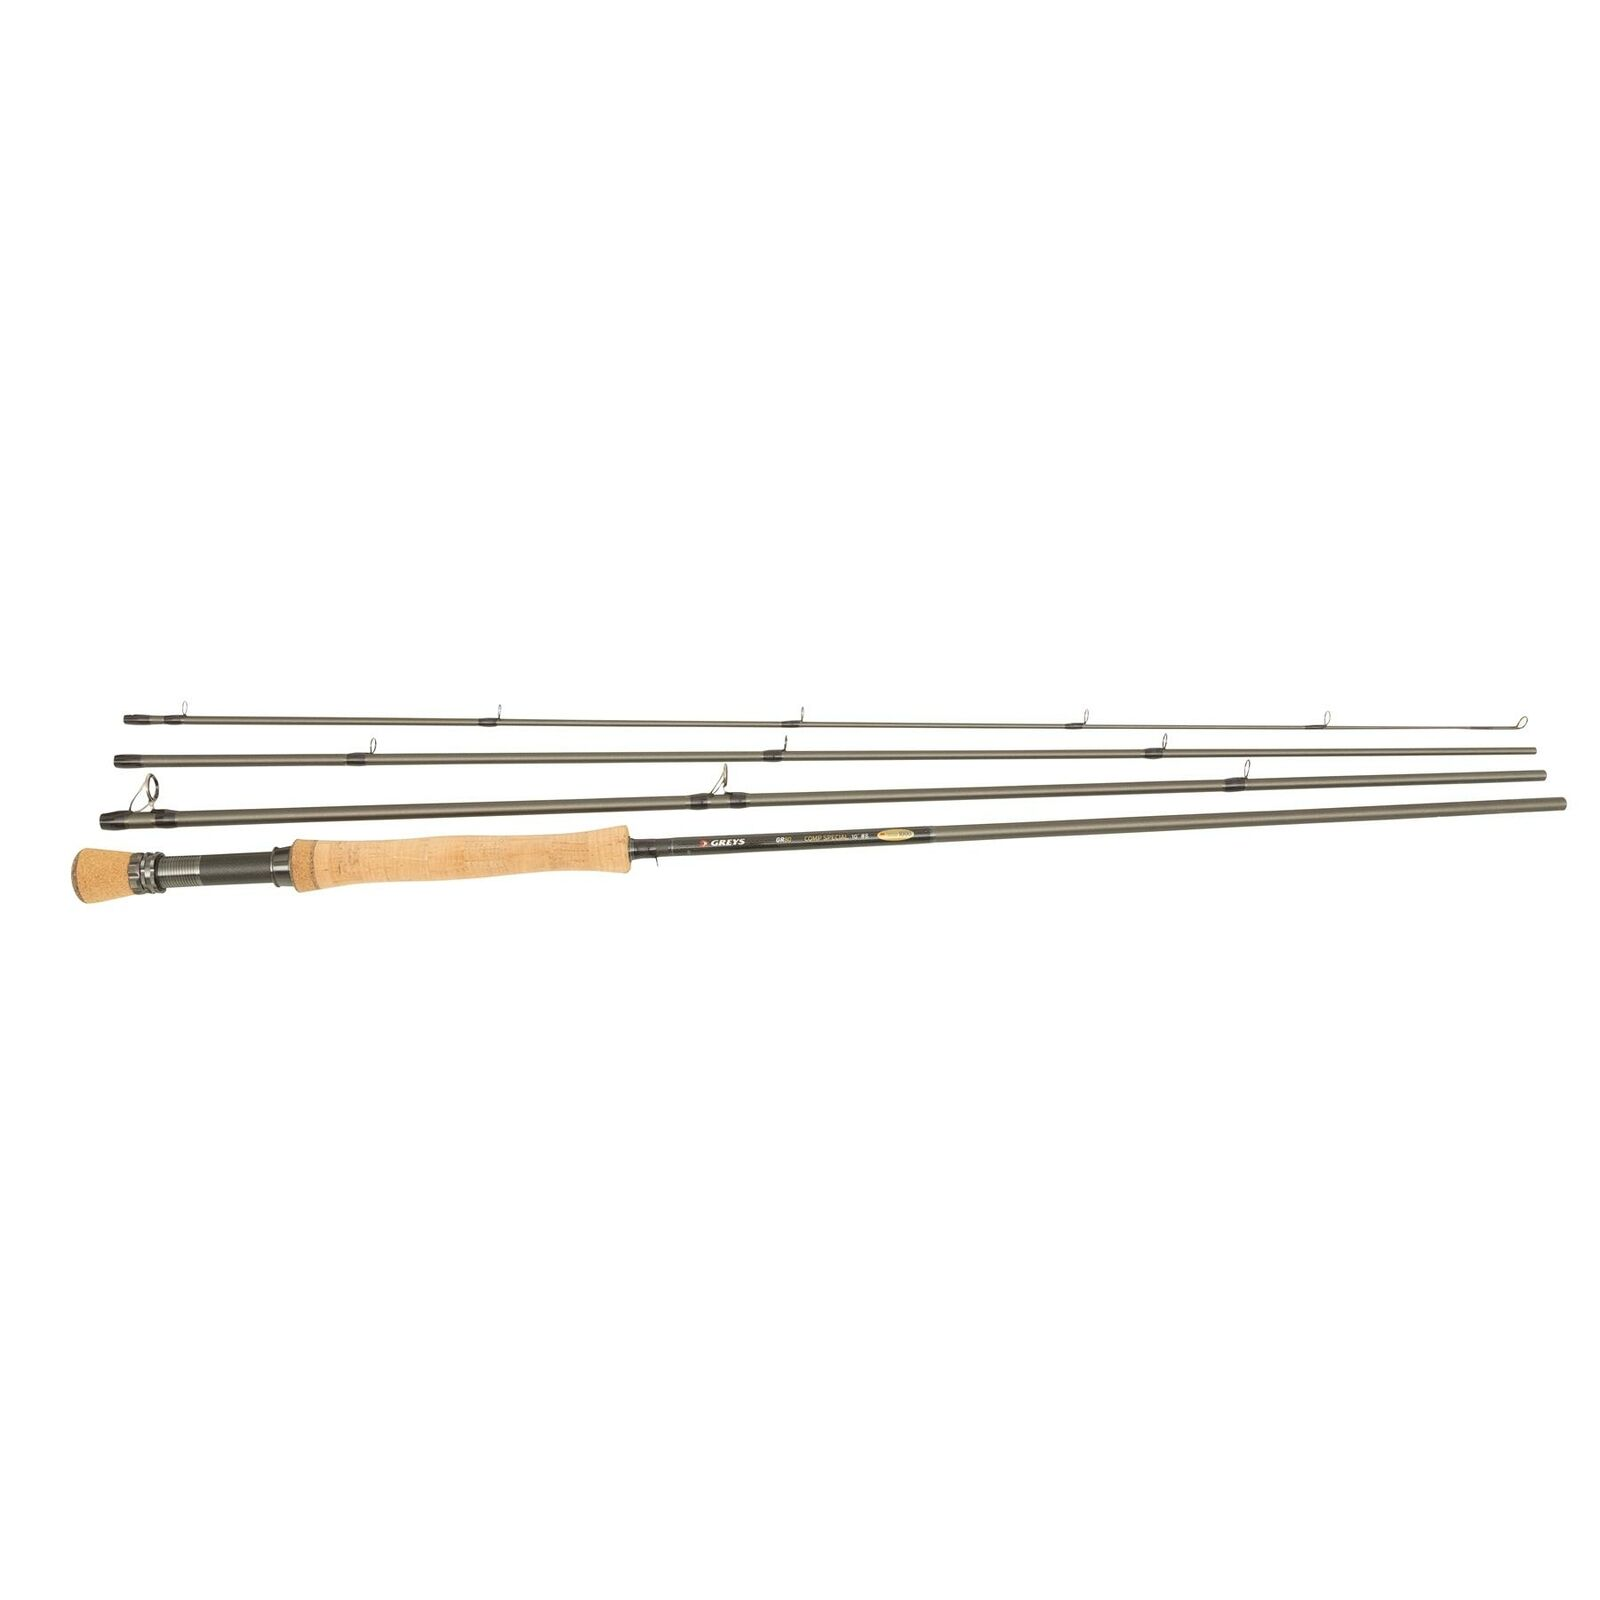 graus GR80 Comp Special 9'6   7 4pce   Fly Fishing Rod